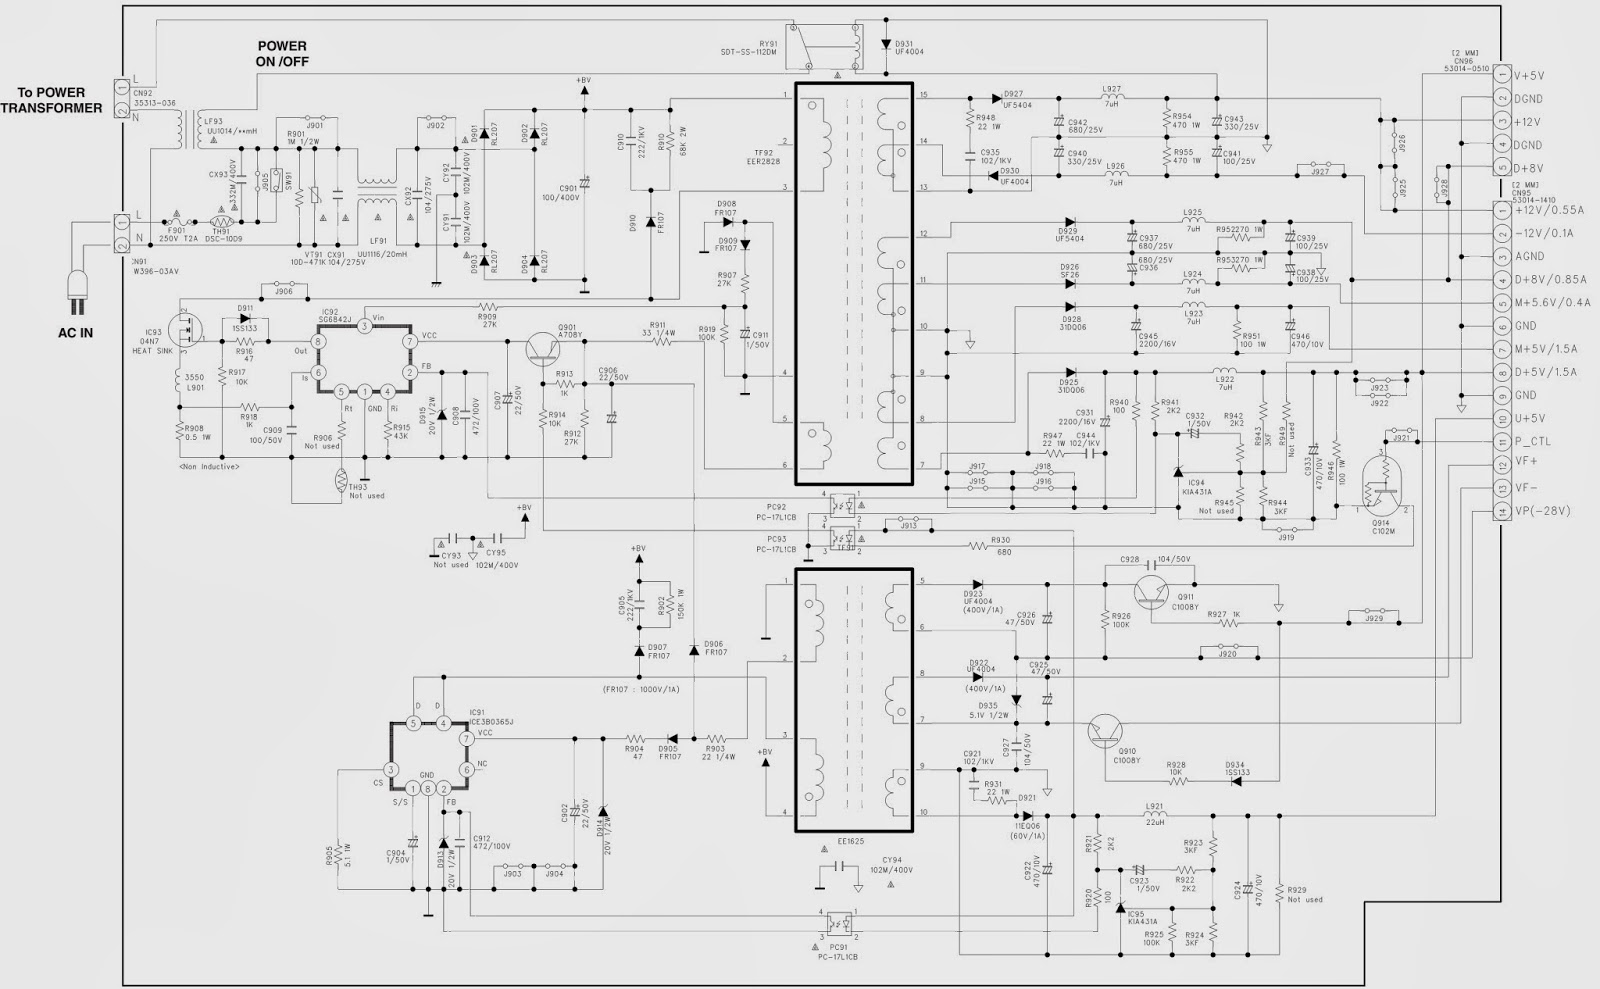 electro help  yamaha dvd-s2700 - power supply smps   schematic